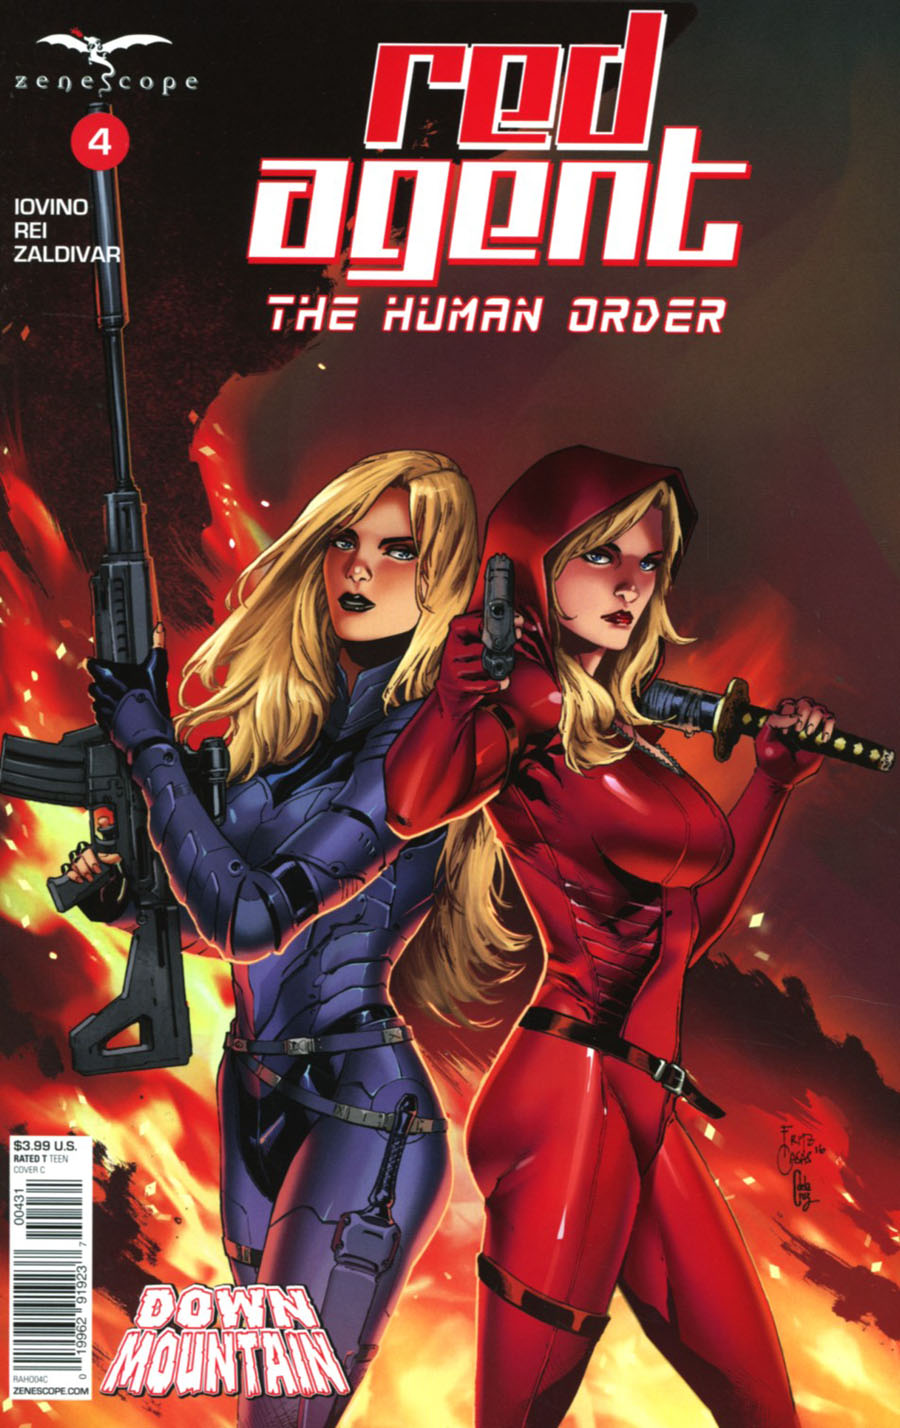 Grimm Fairy Tales Presents Red Agent Human Order #4 Cover C Fritz Casas